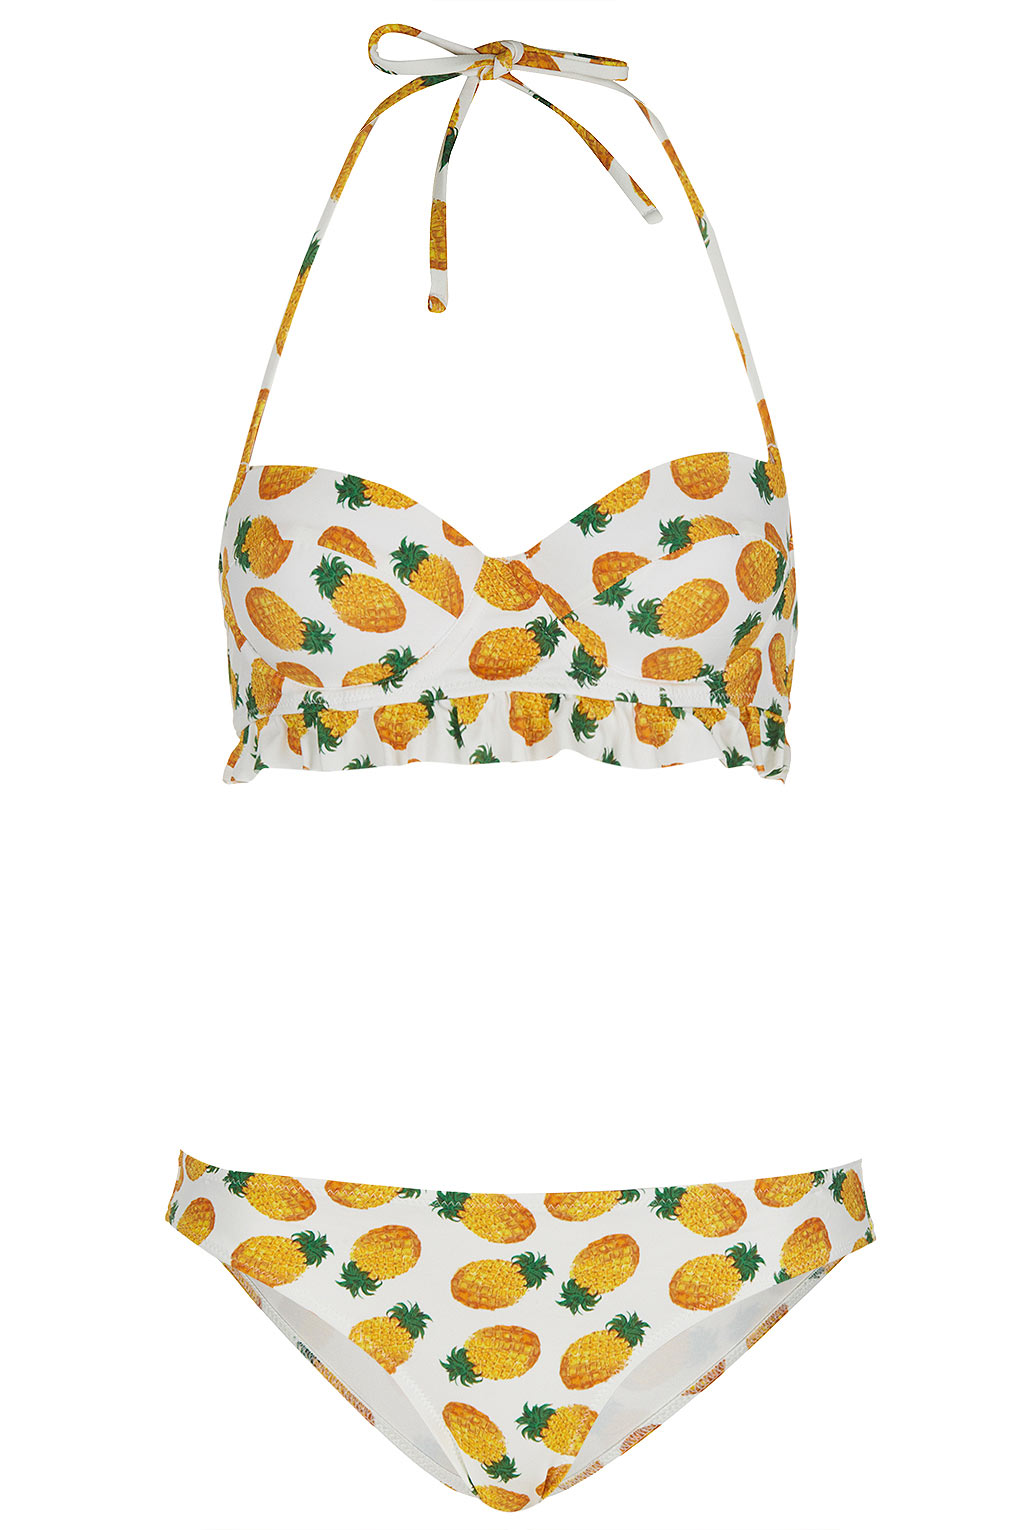 Pineapple bikinis by accessorize and top shop ...